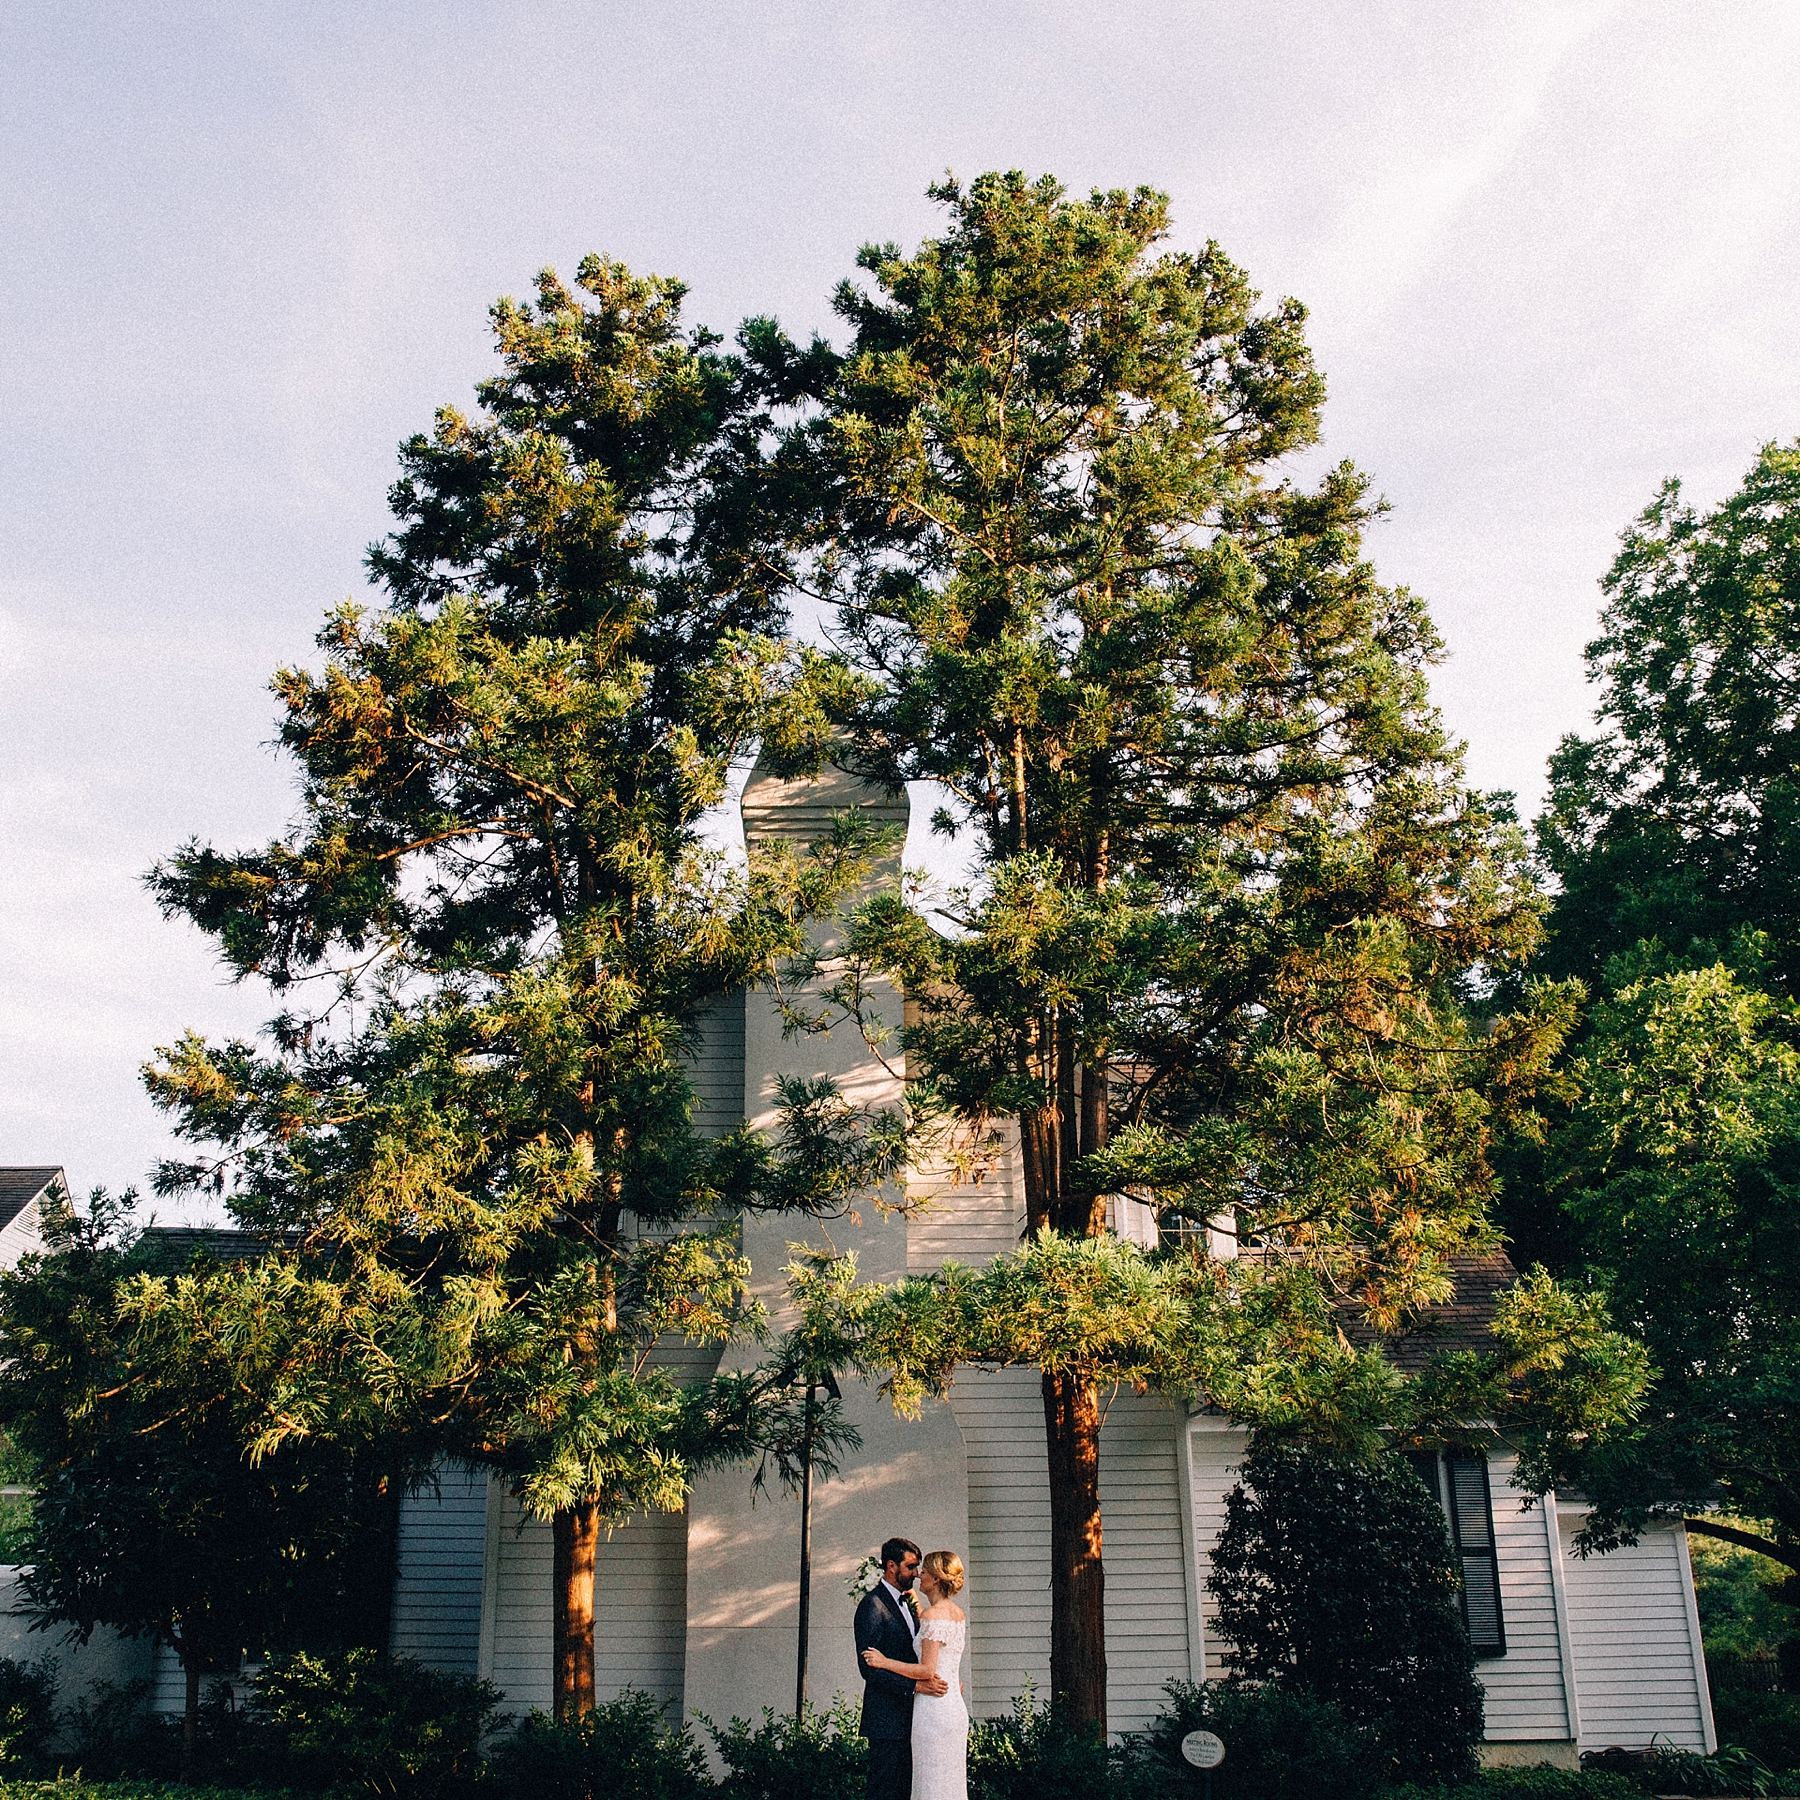 north-carolina-fearrington-village-wedding-photographer-destination_0046.jpg